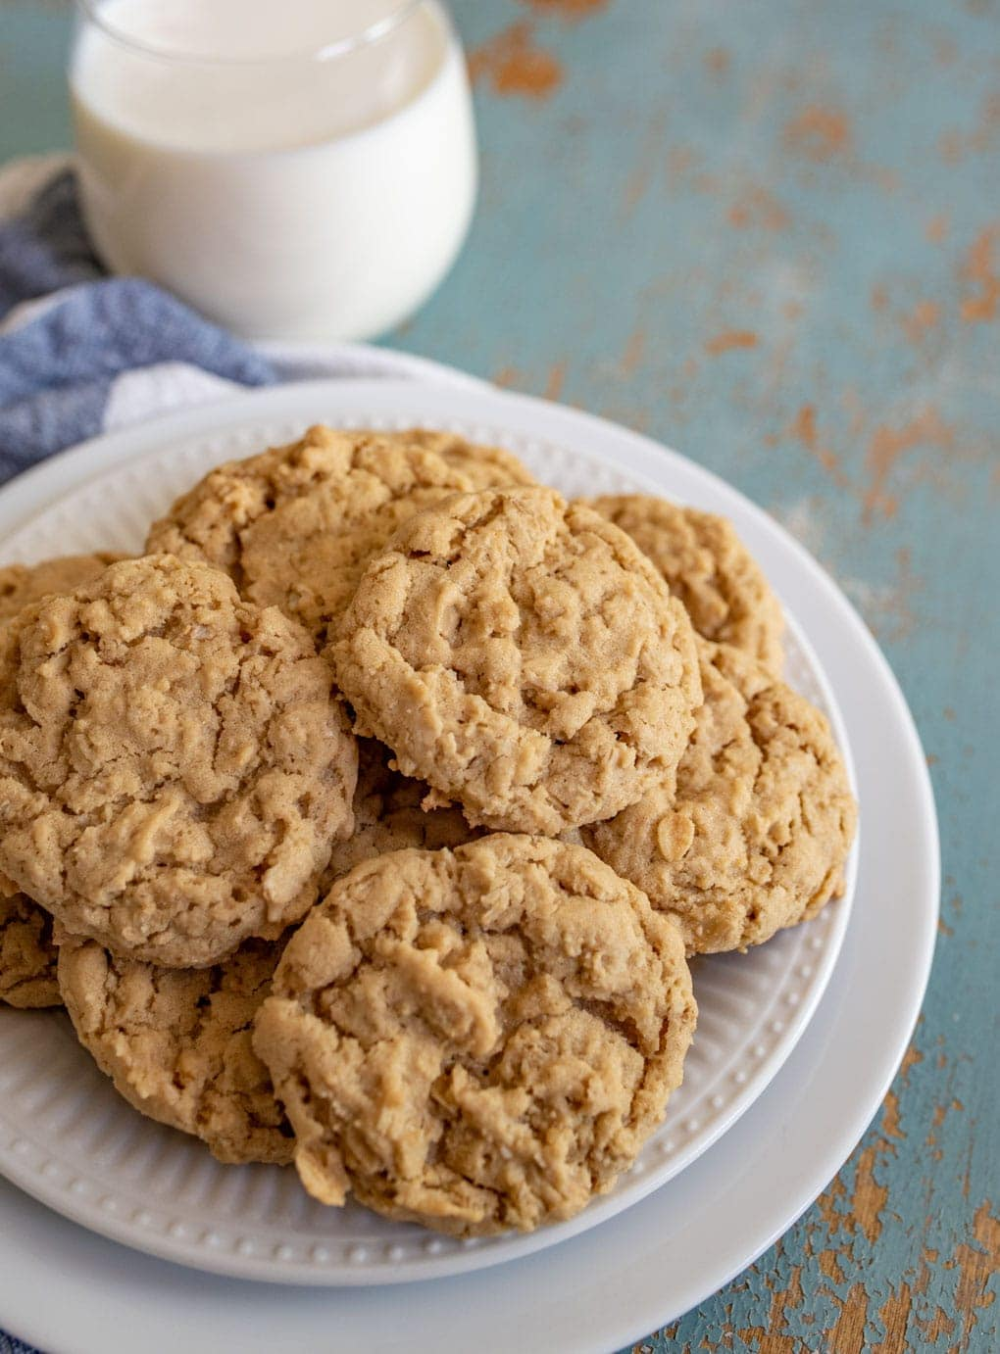 The Best Simple Oatmeal Cookie Recipe that turns out every time no recipes no chocolate just simple butter and oatmeal cookies that you can add or not what you like